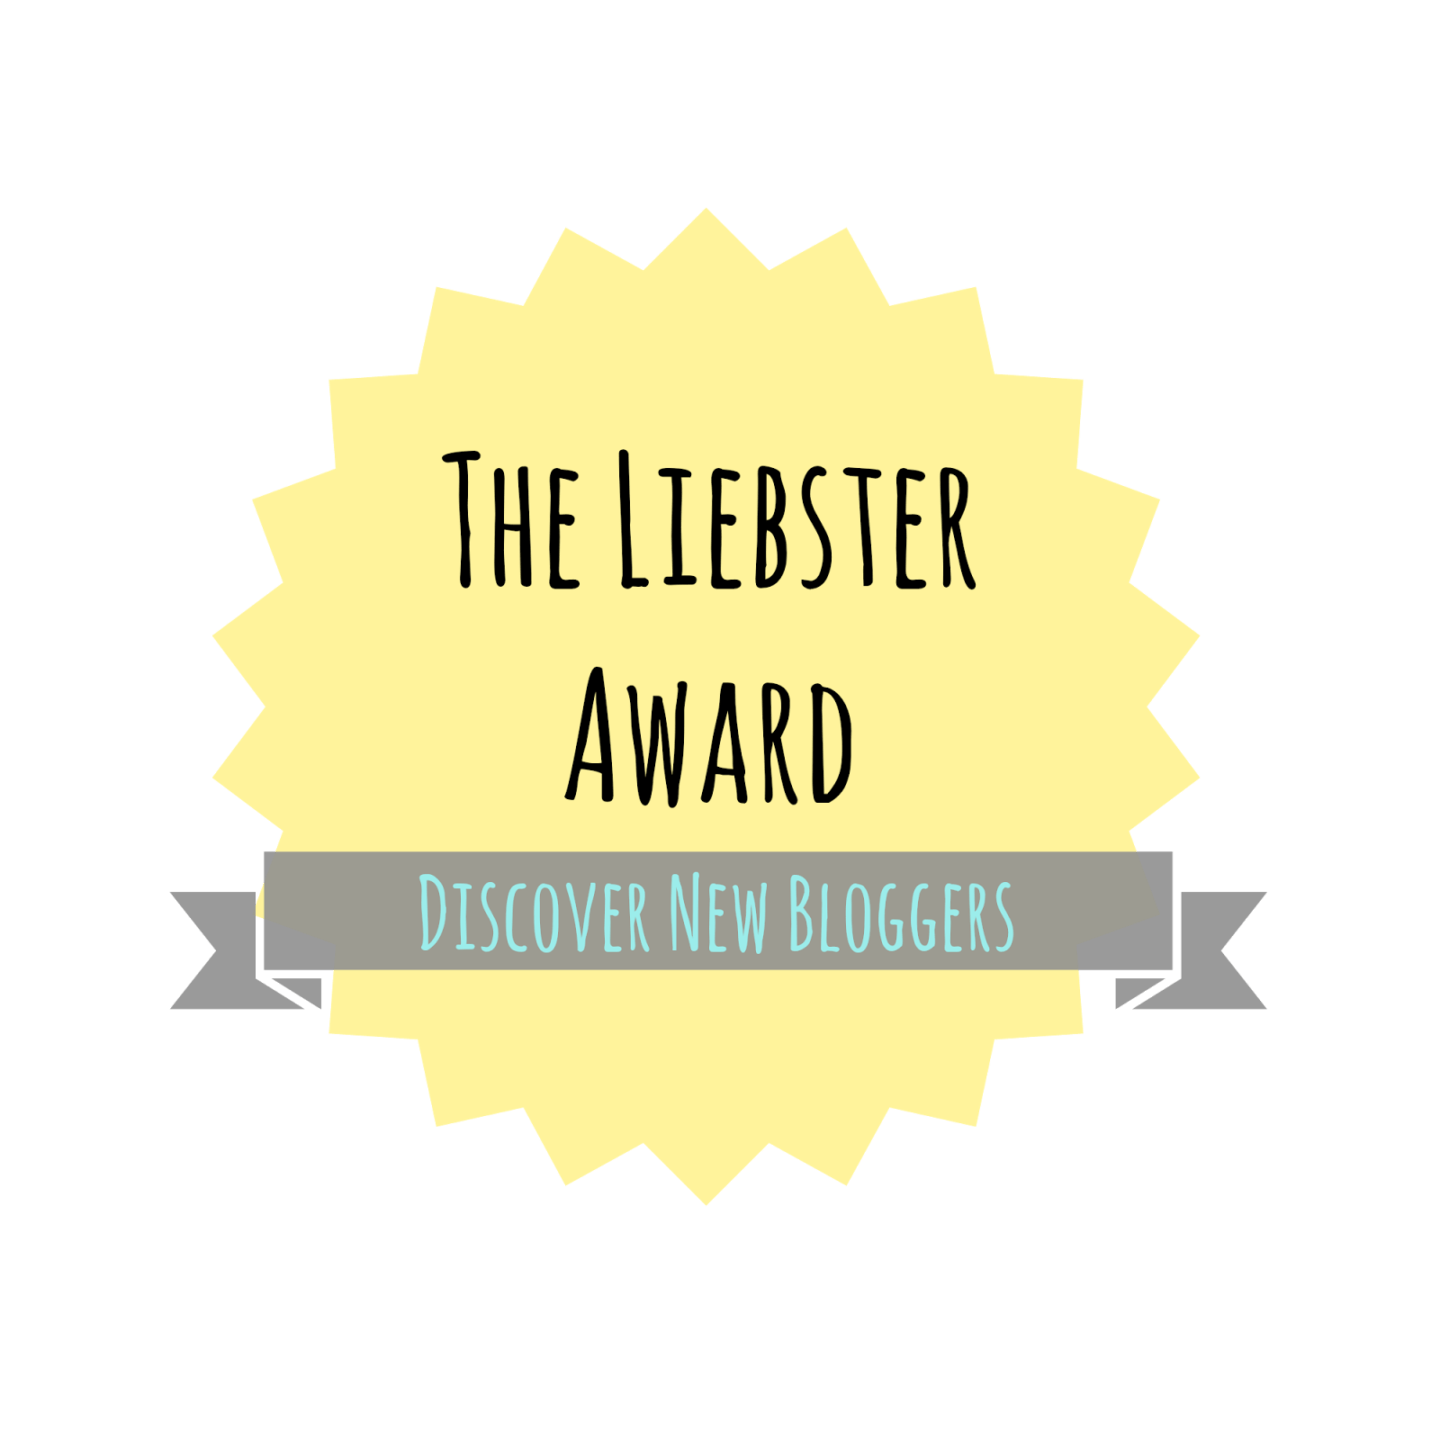 I'VE BEEN NOMINATED FOR THE 2017 LIEBSTER AWARD